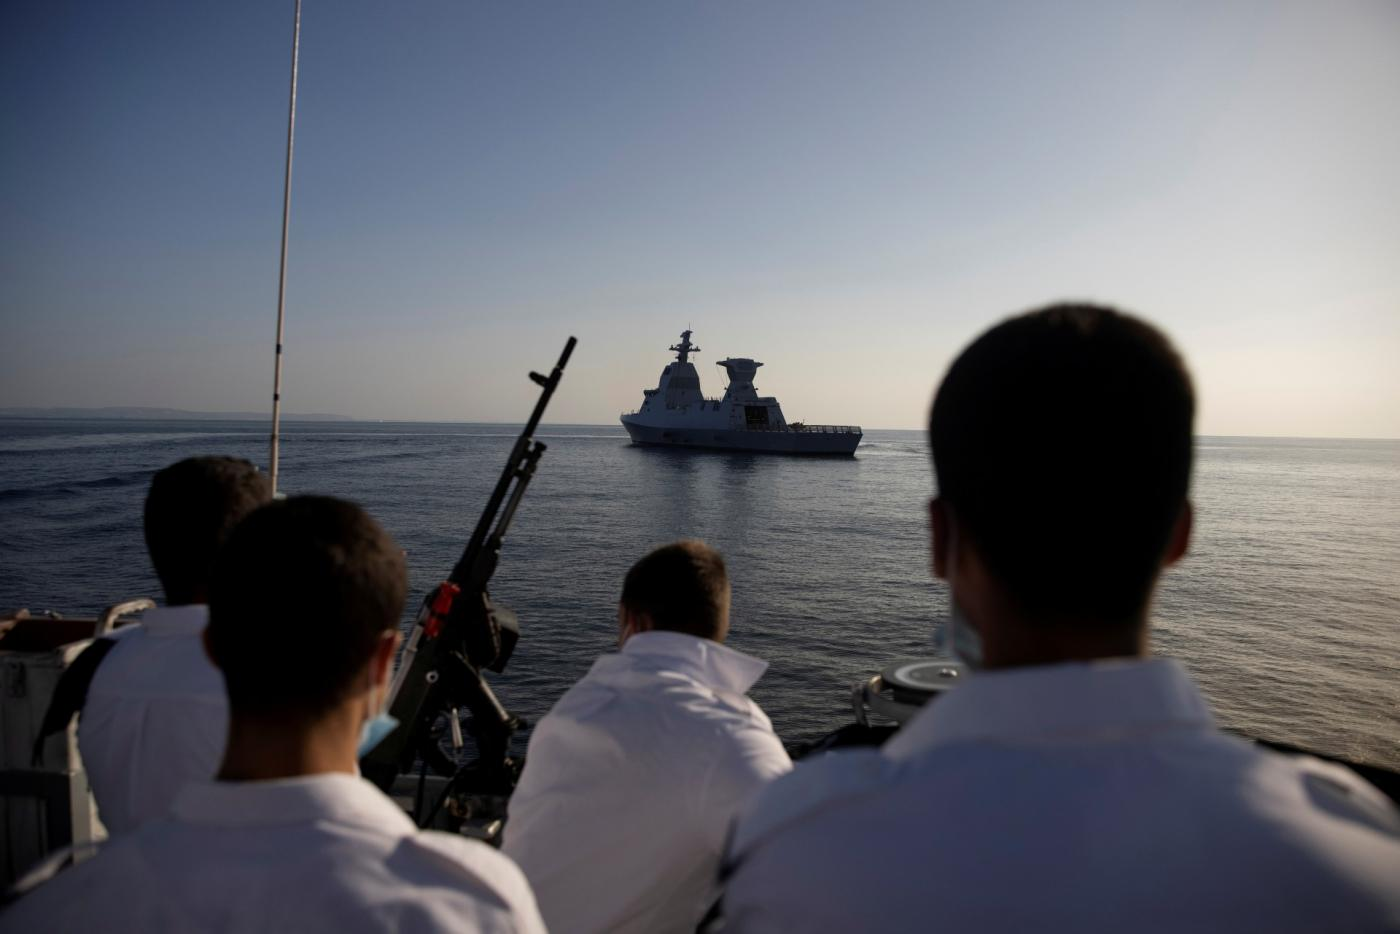 How Israel's bragging forced Iran to target its ships and endanger world shipping